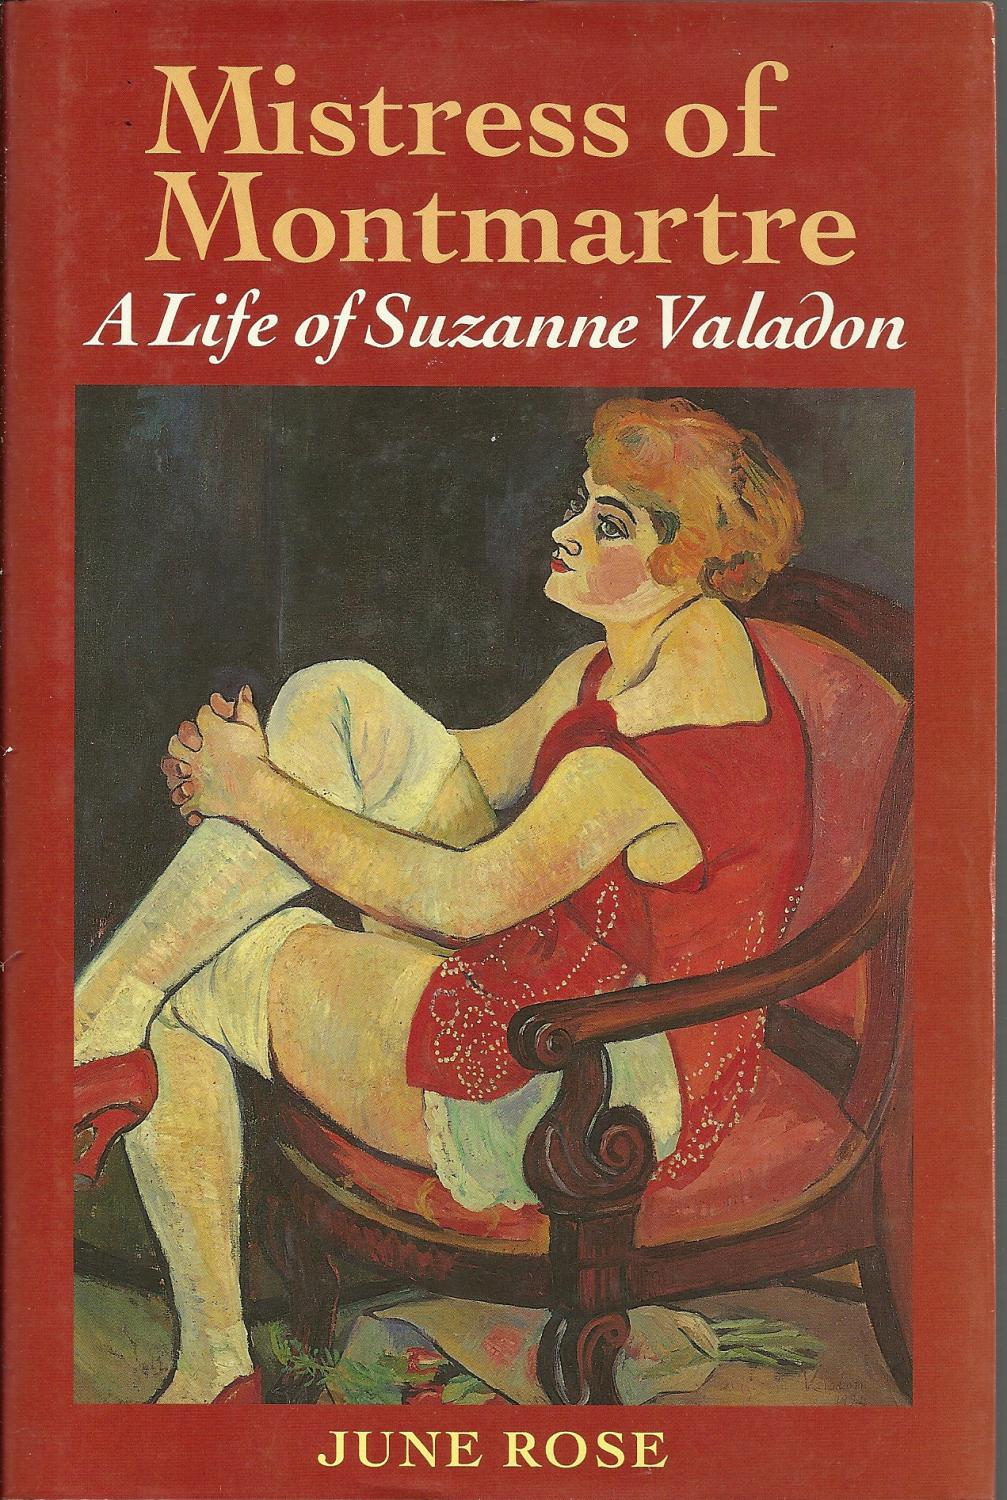 MISTRESS OF MONTMARTRE: A life of Suzanne Valadon - ROSE, June